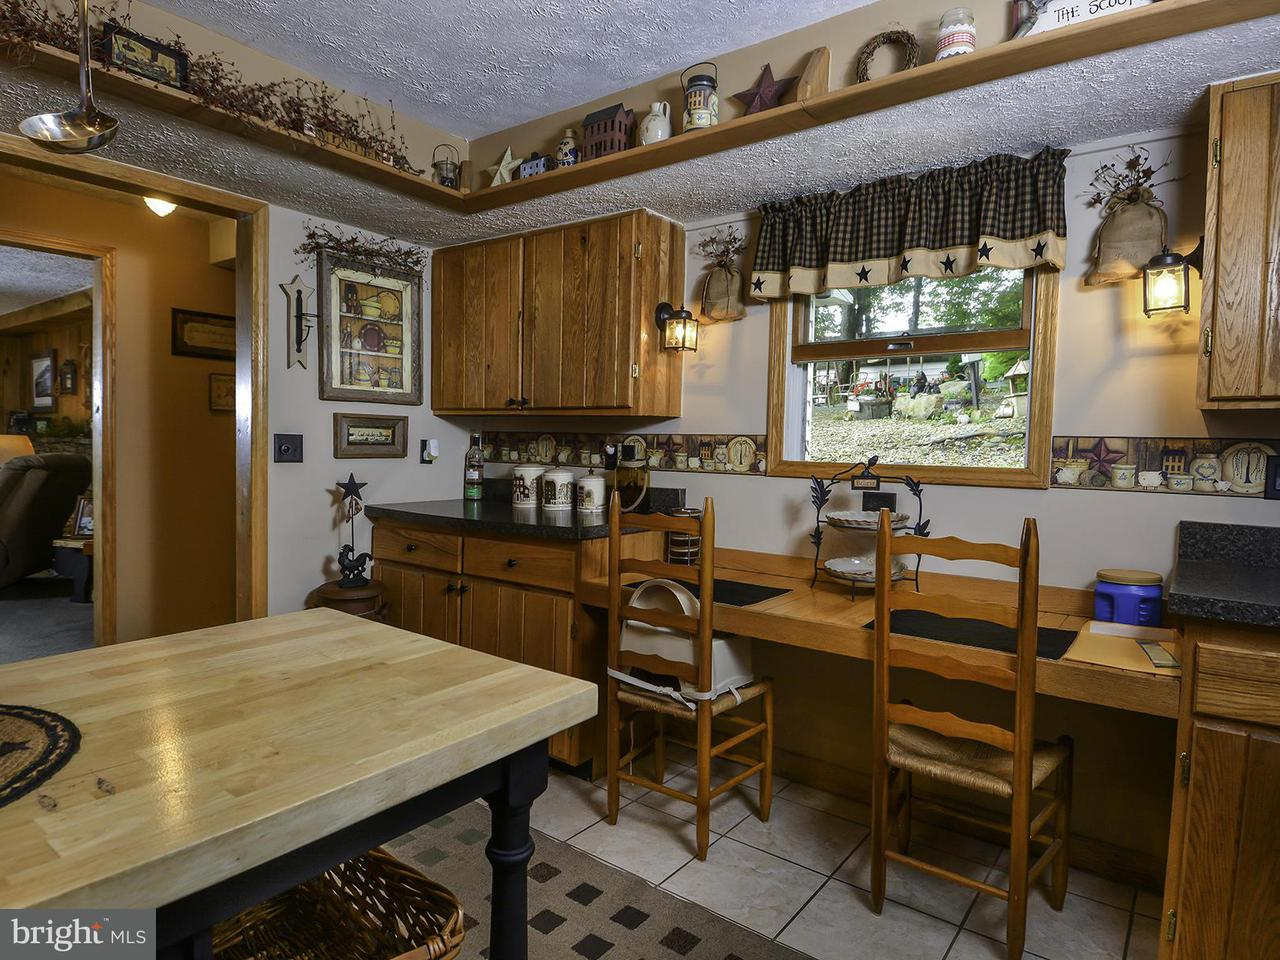 Additional photo for property listing at 159 Glotfelty Dr  Oakland, Maryland 21550 United States